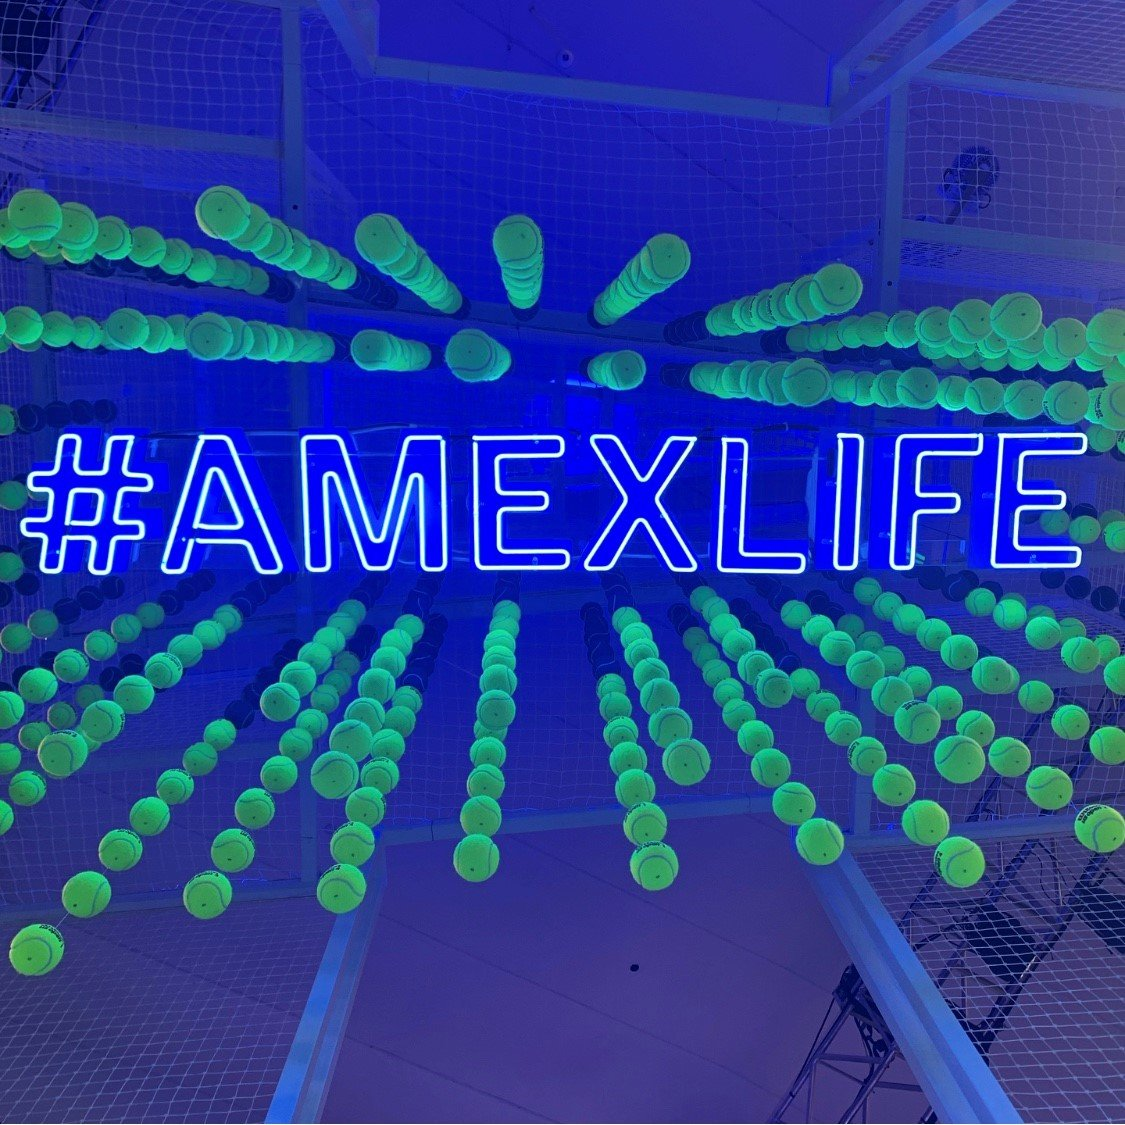 American Express Business (@AmexBusiness) | Twitter